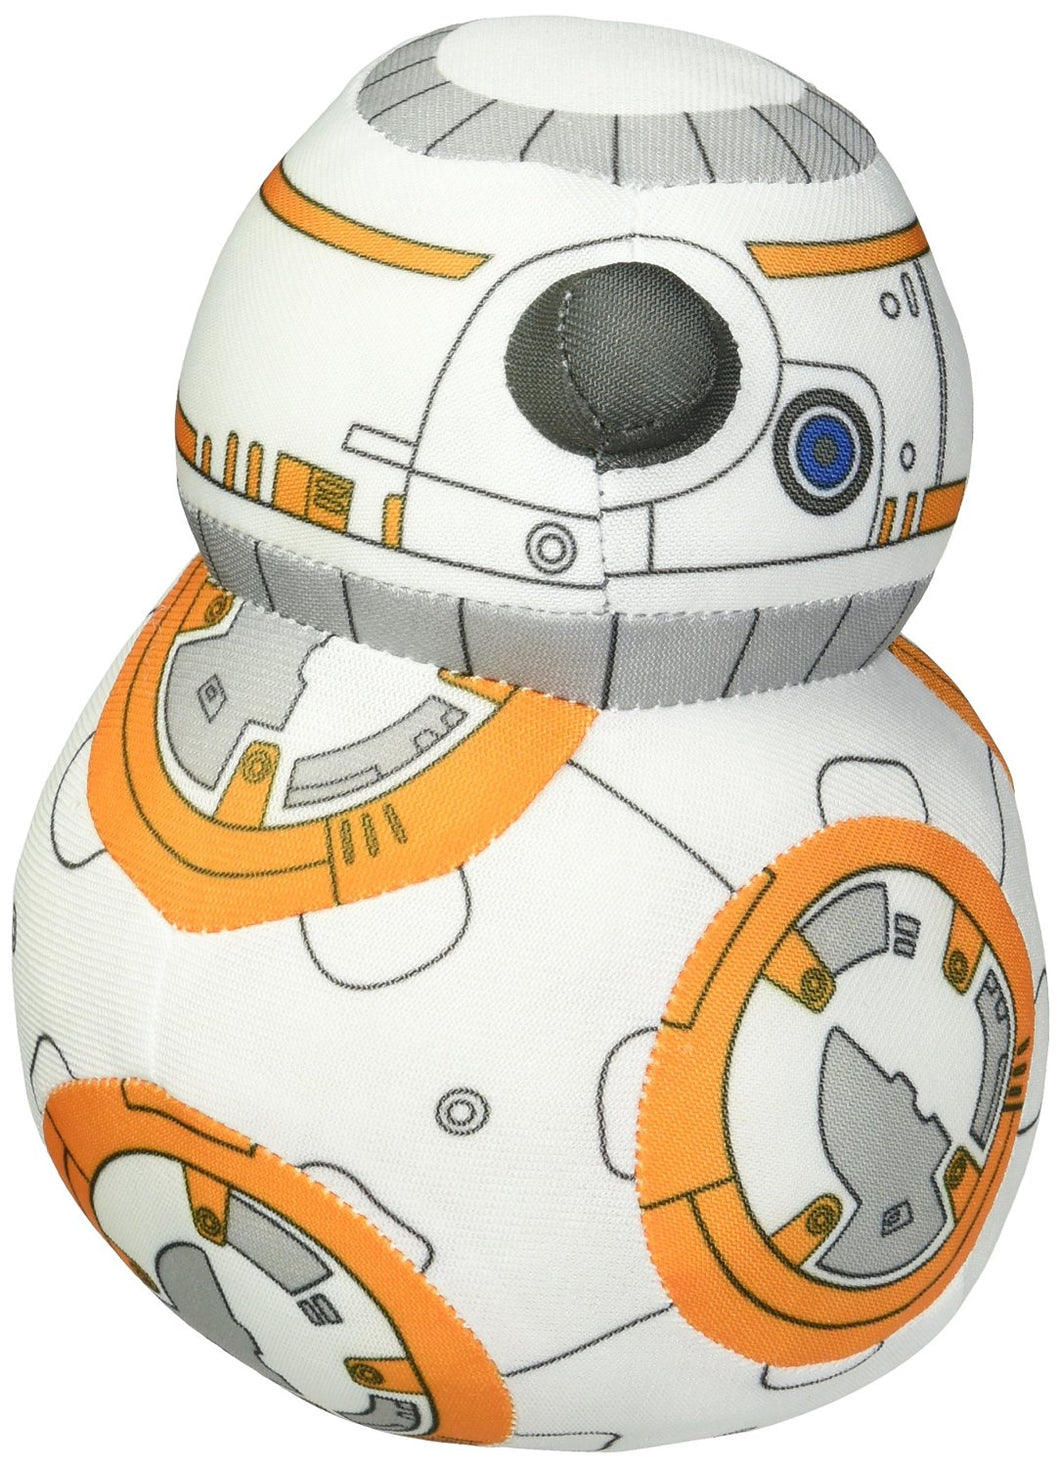 Star Wars: Episode VII - The Force Awakens BB-8 Super Deformed Plush